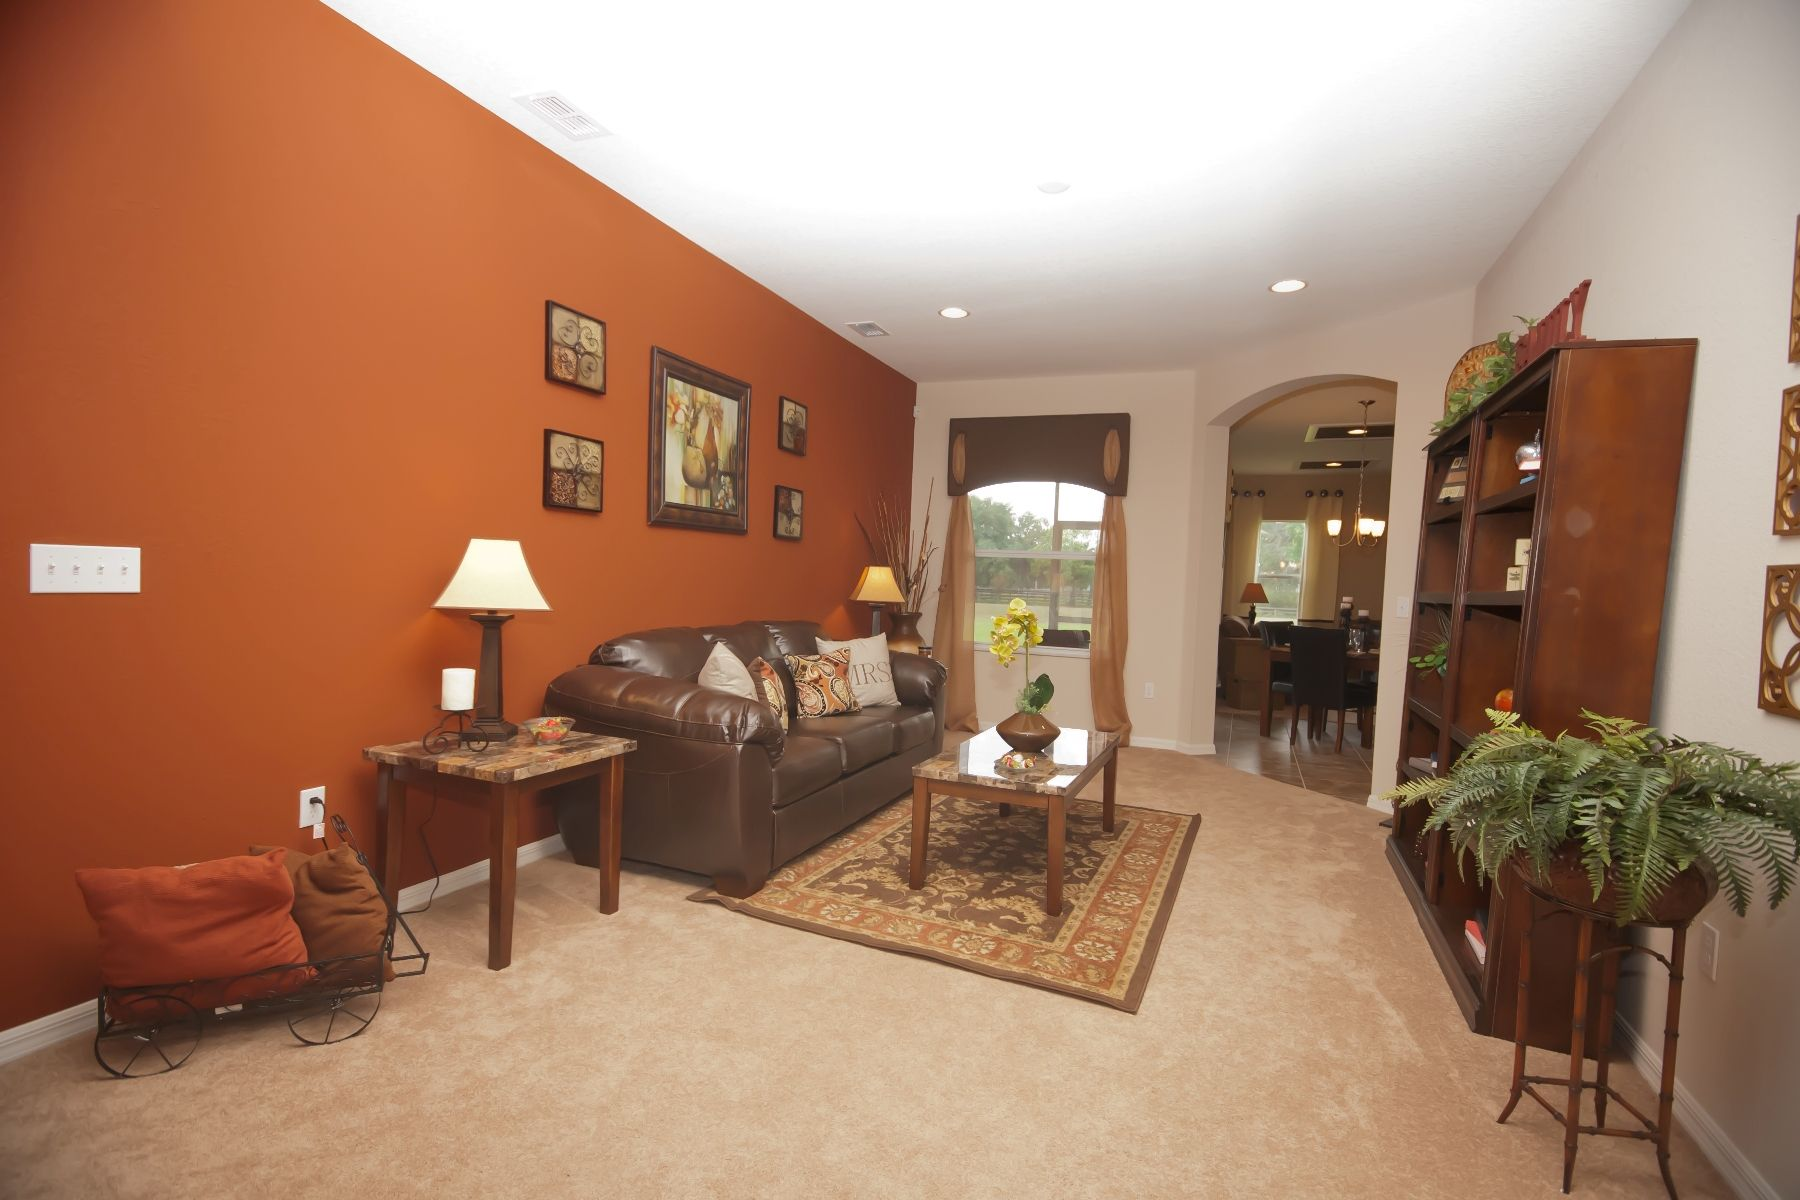 Burnt orange accent wall perfectly pairs with the neutral